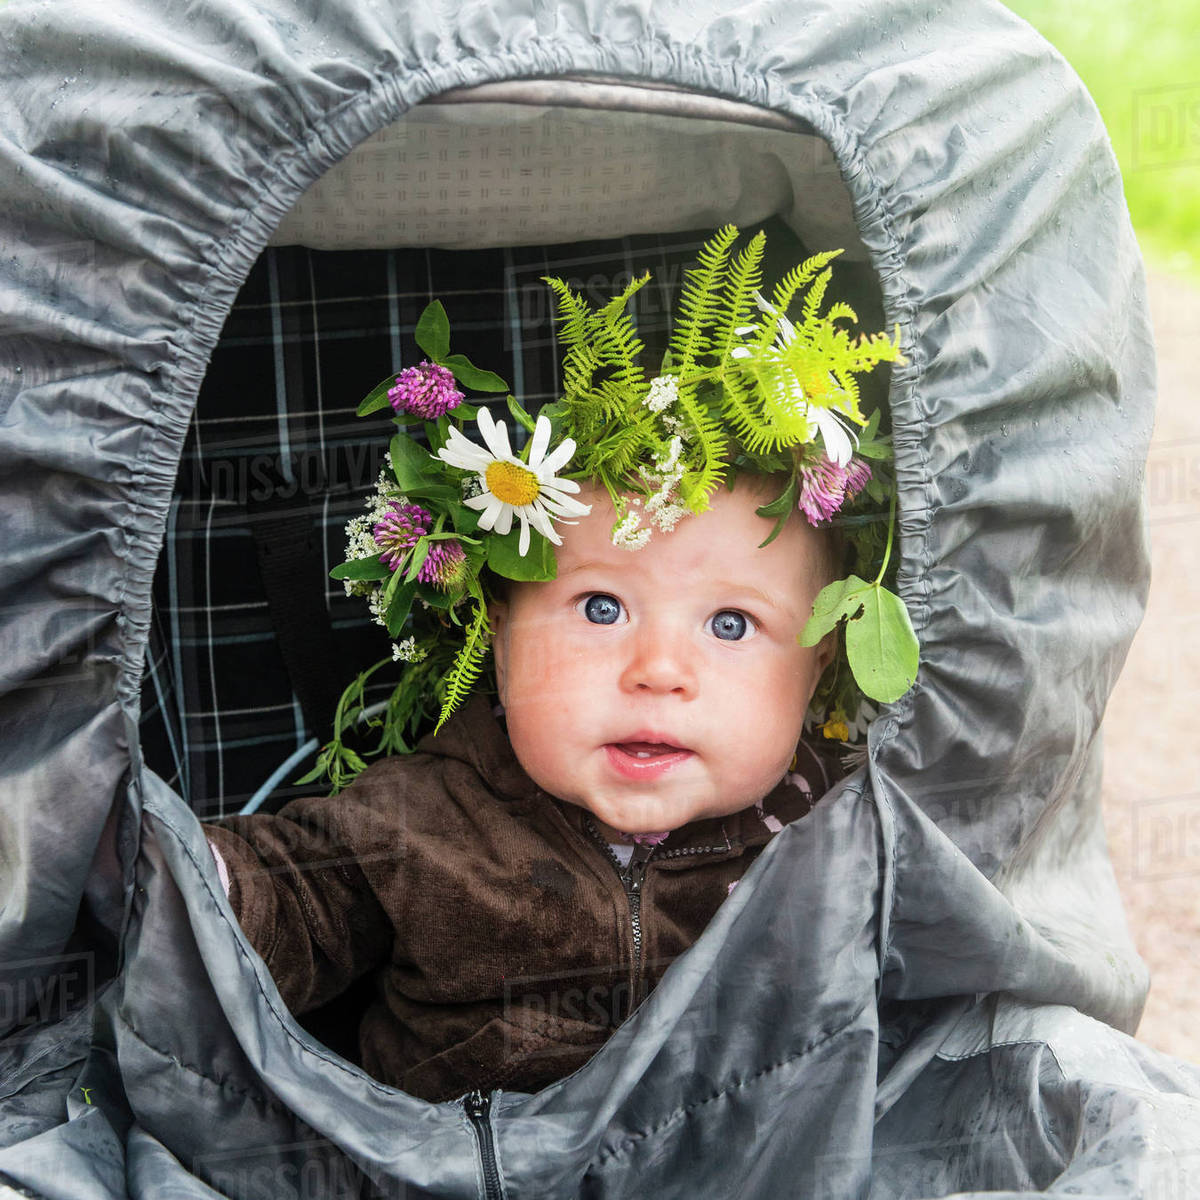 a71df0e491 Baby in buggy wearing flower wreath - Stock Photo - Dissolve